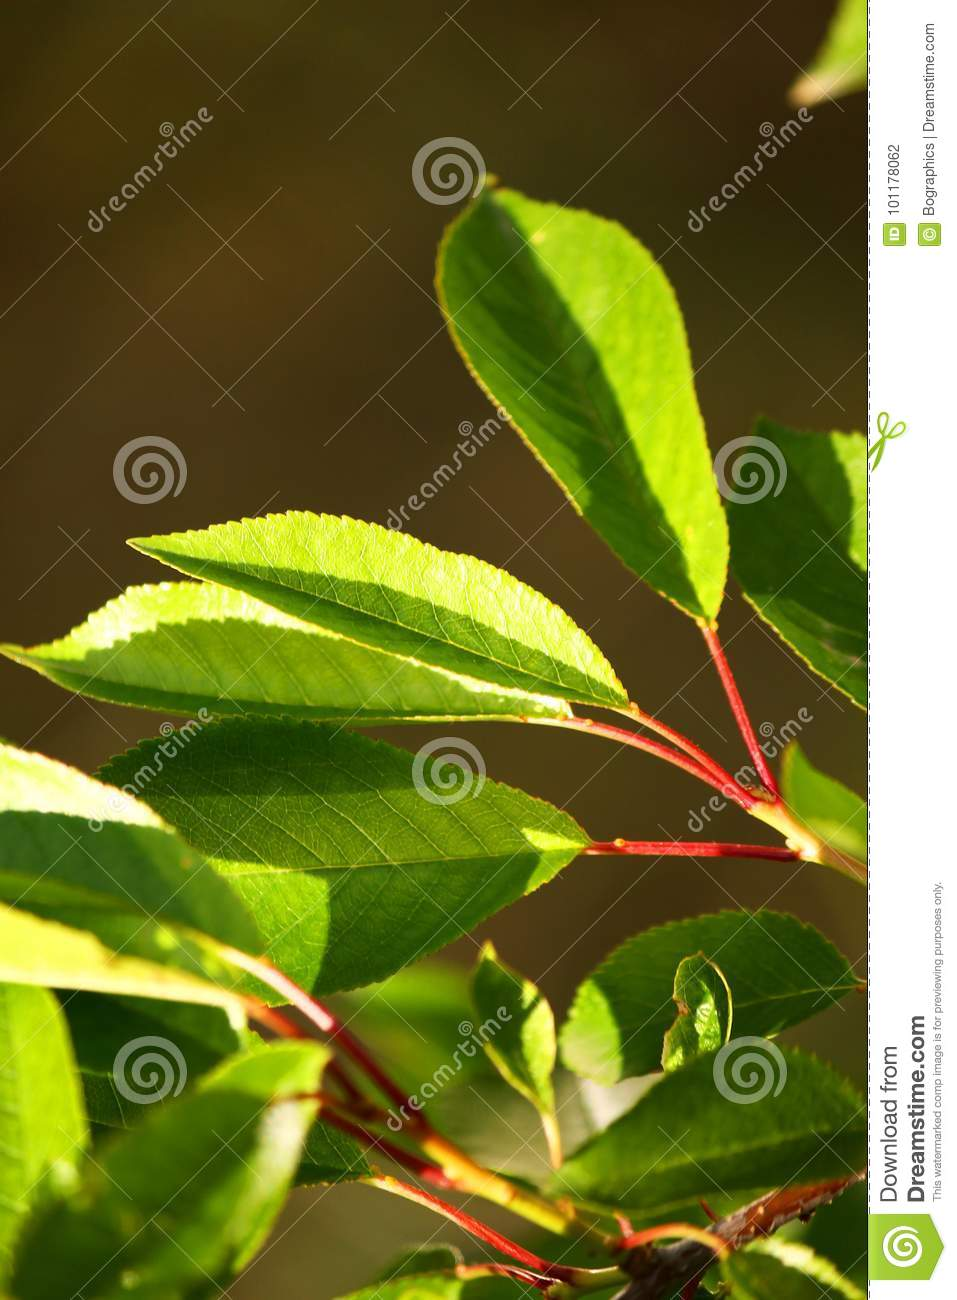 Sun-lit small green leaves on blurred background